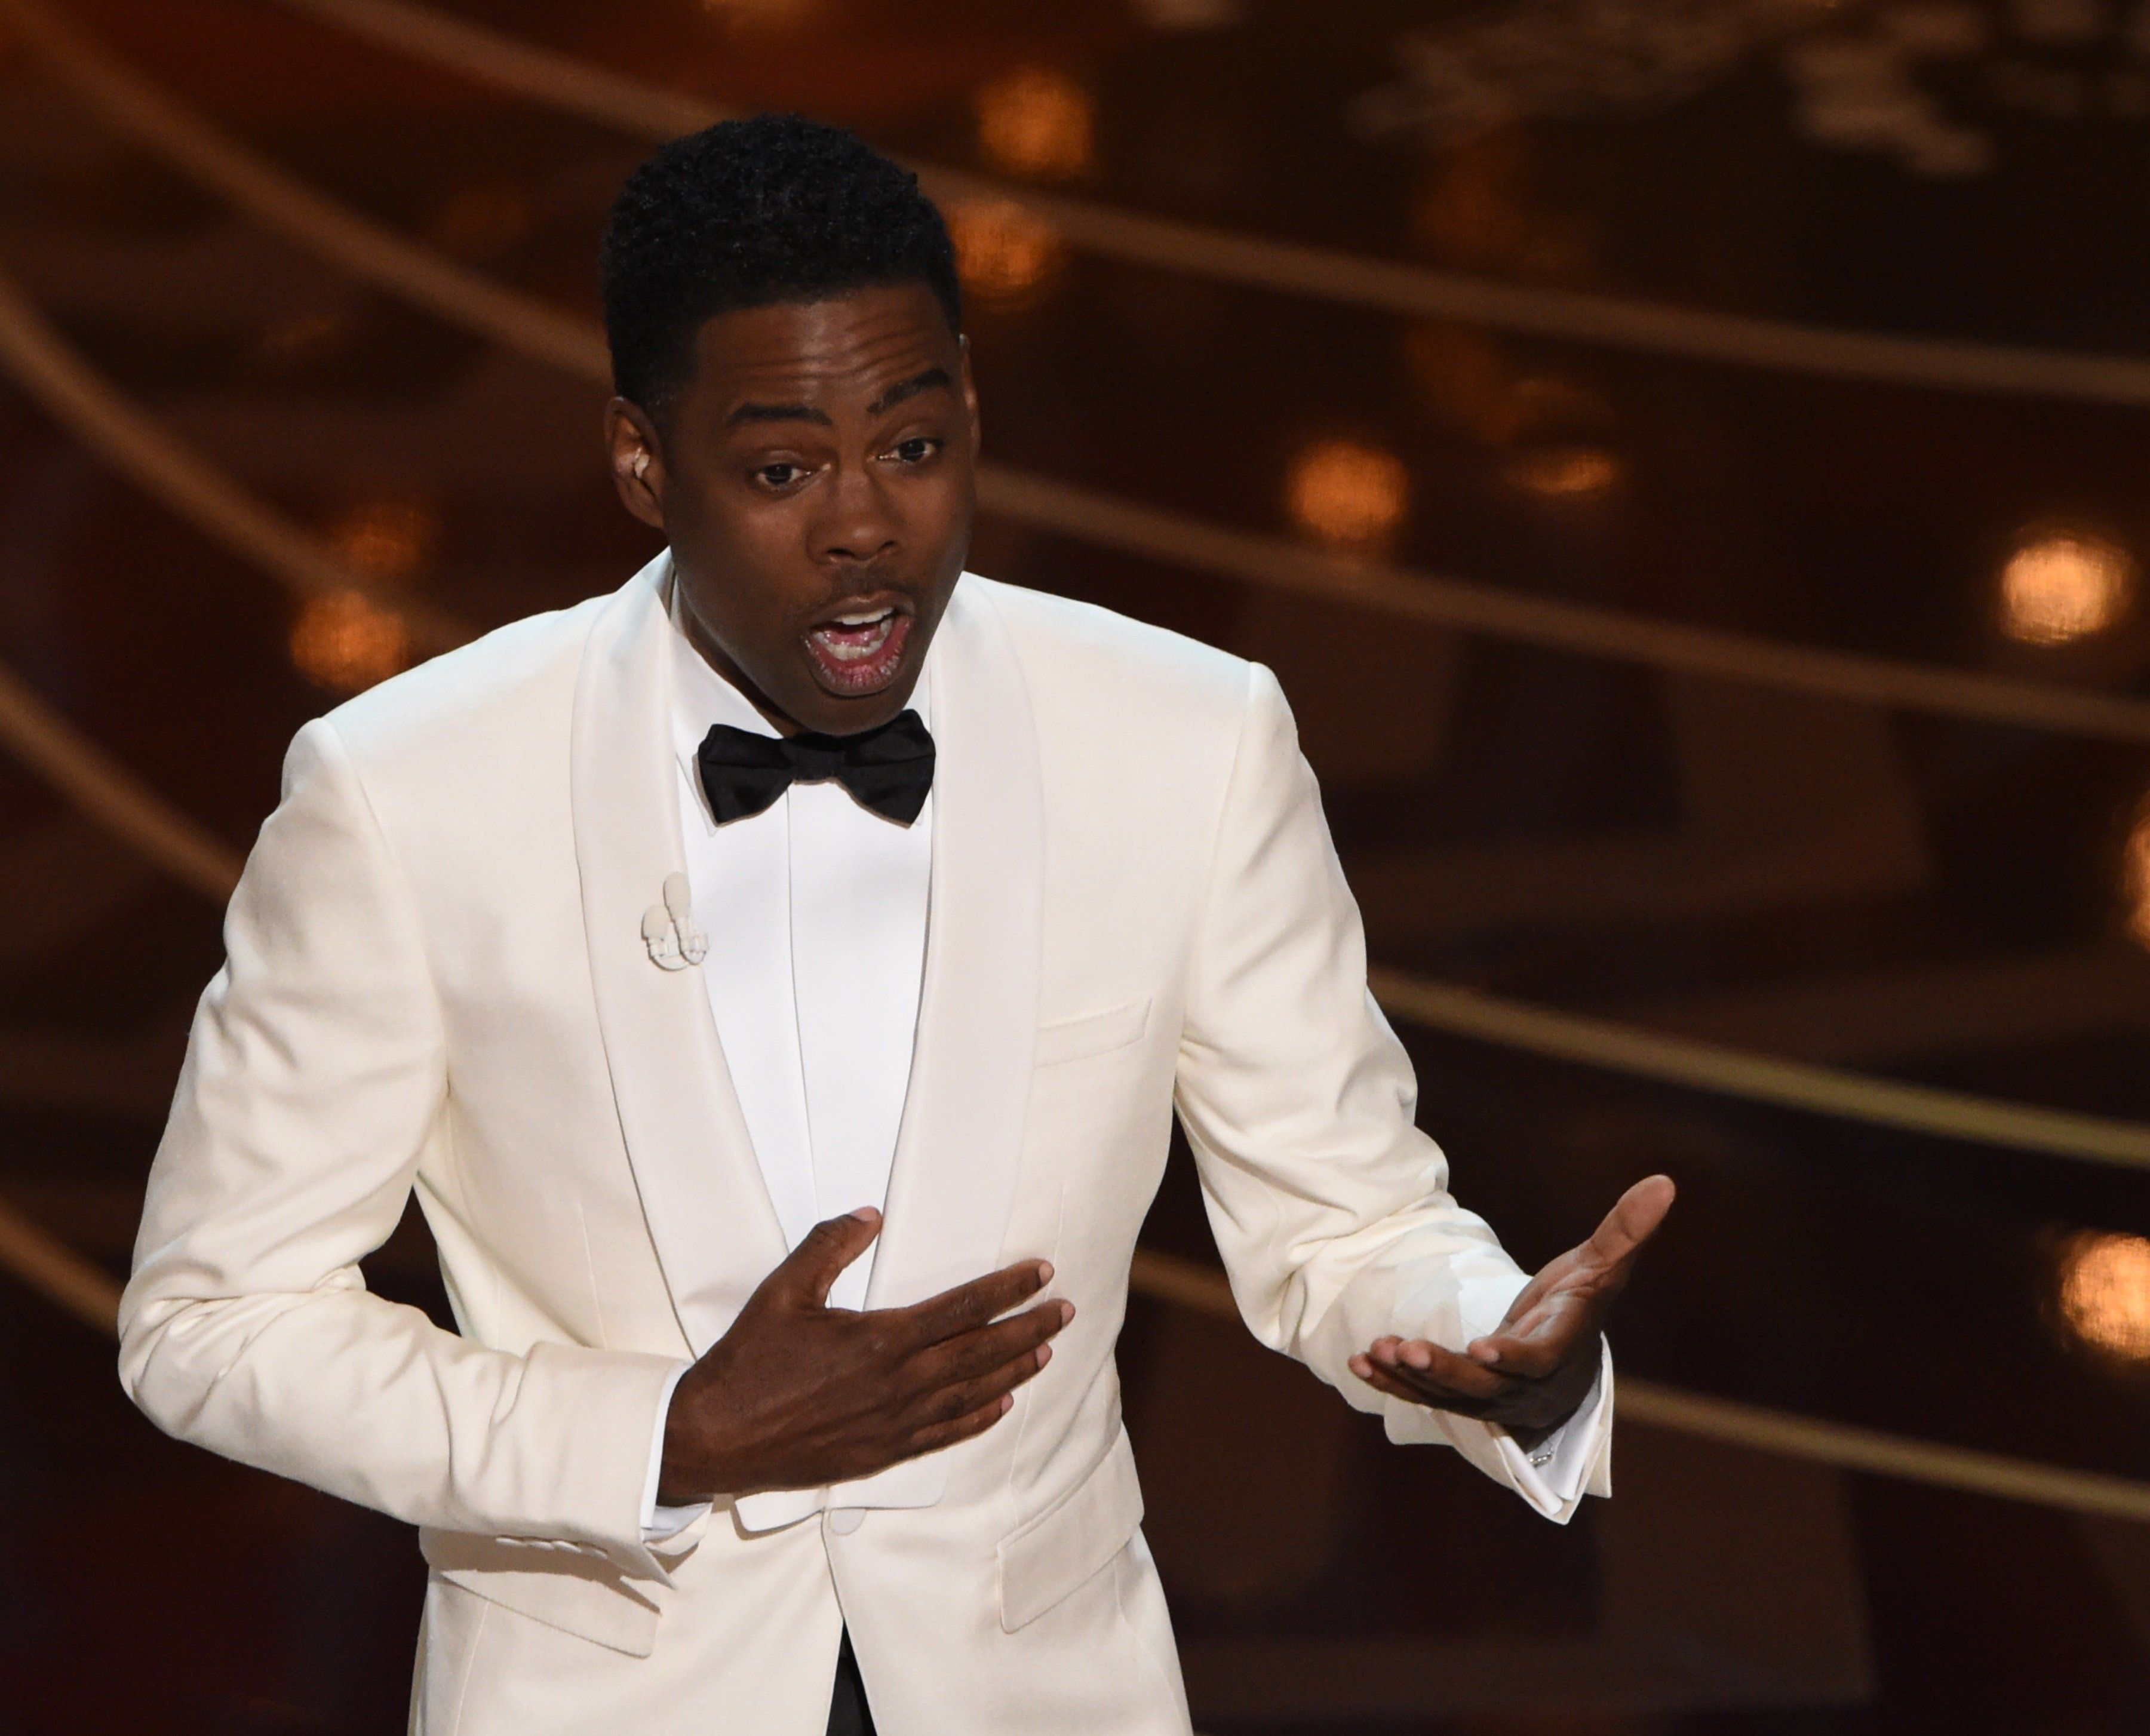 Actor Chris Rock presents on stage at the 88th Oscars on February 28, 2016 in Hollywood, California. AFP PHOTO / MARK RALSTON / AFP / MARK RALSTON        (Photo credit should read MARK RALSTON/AFP/Getty Images)